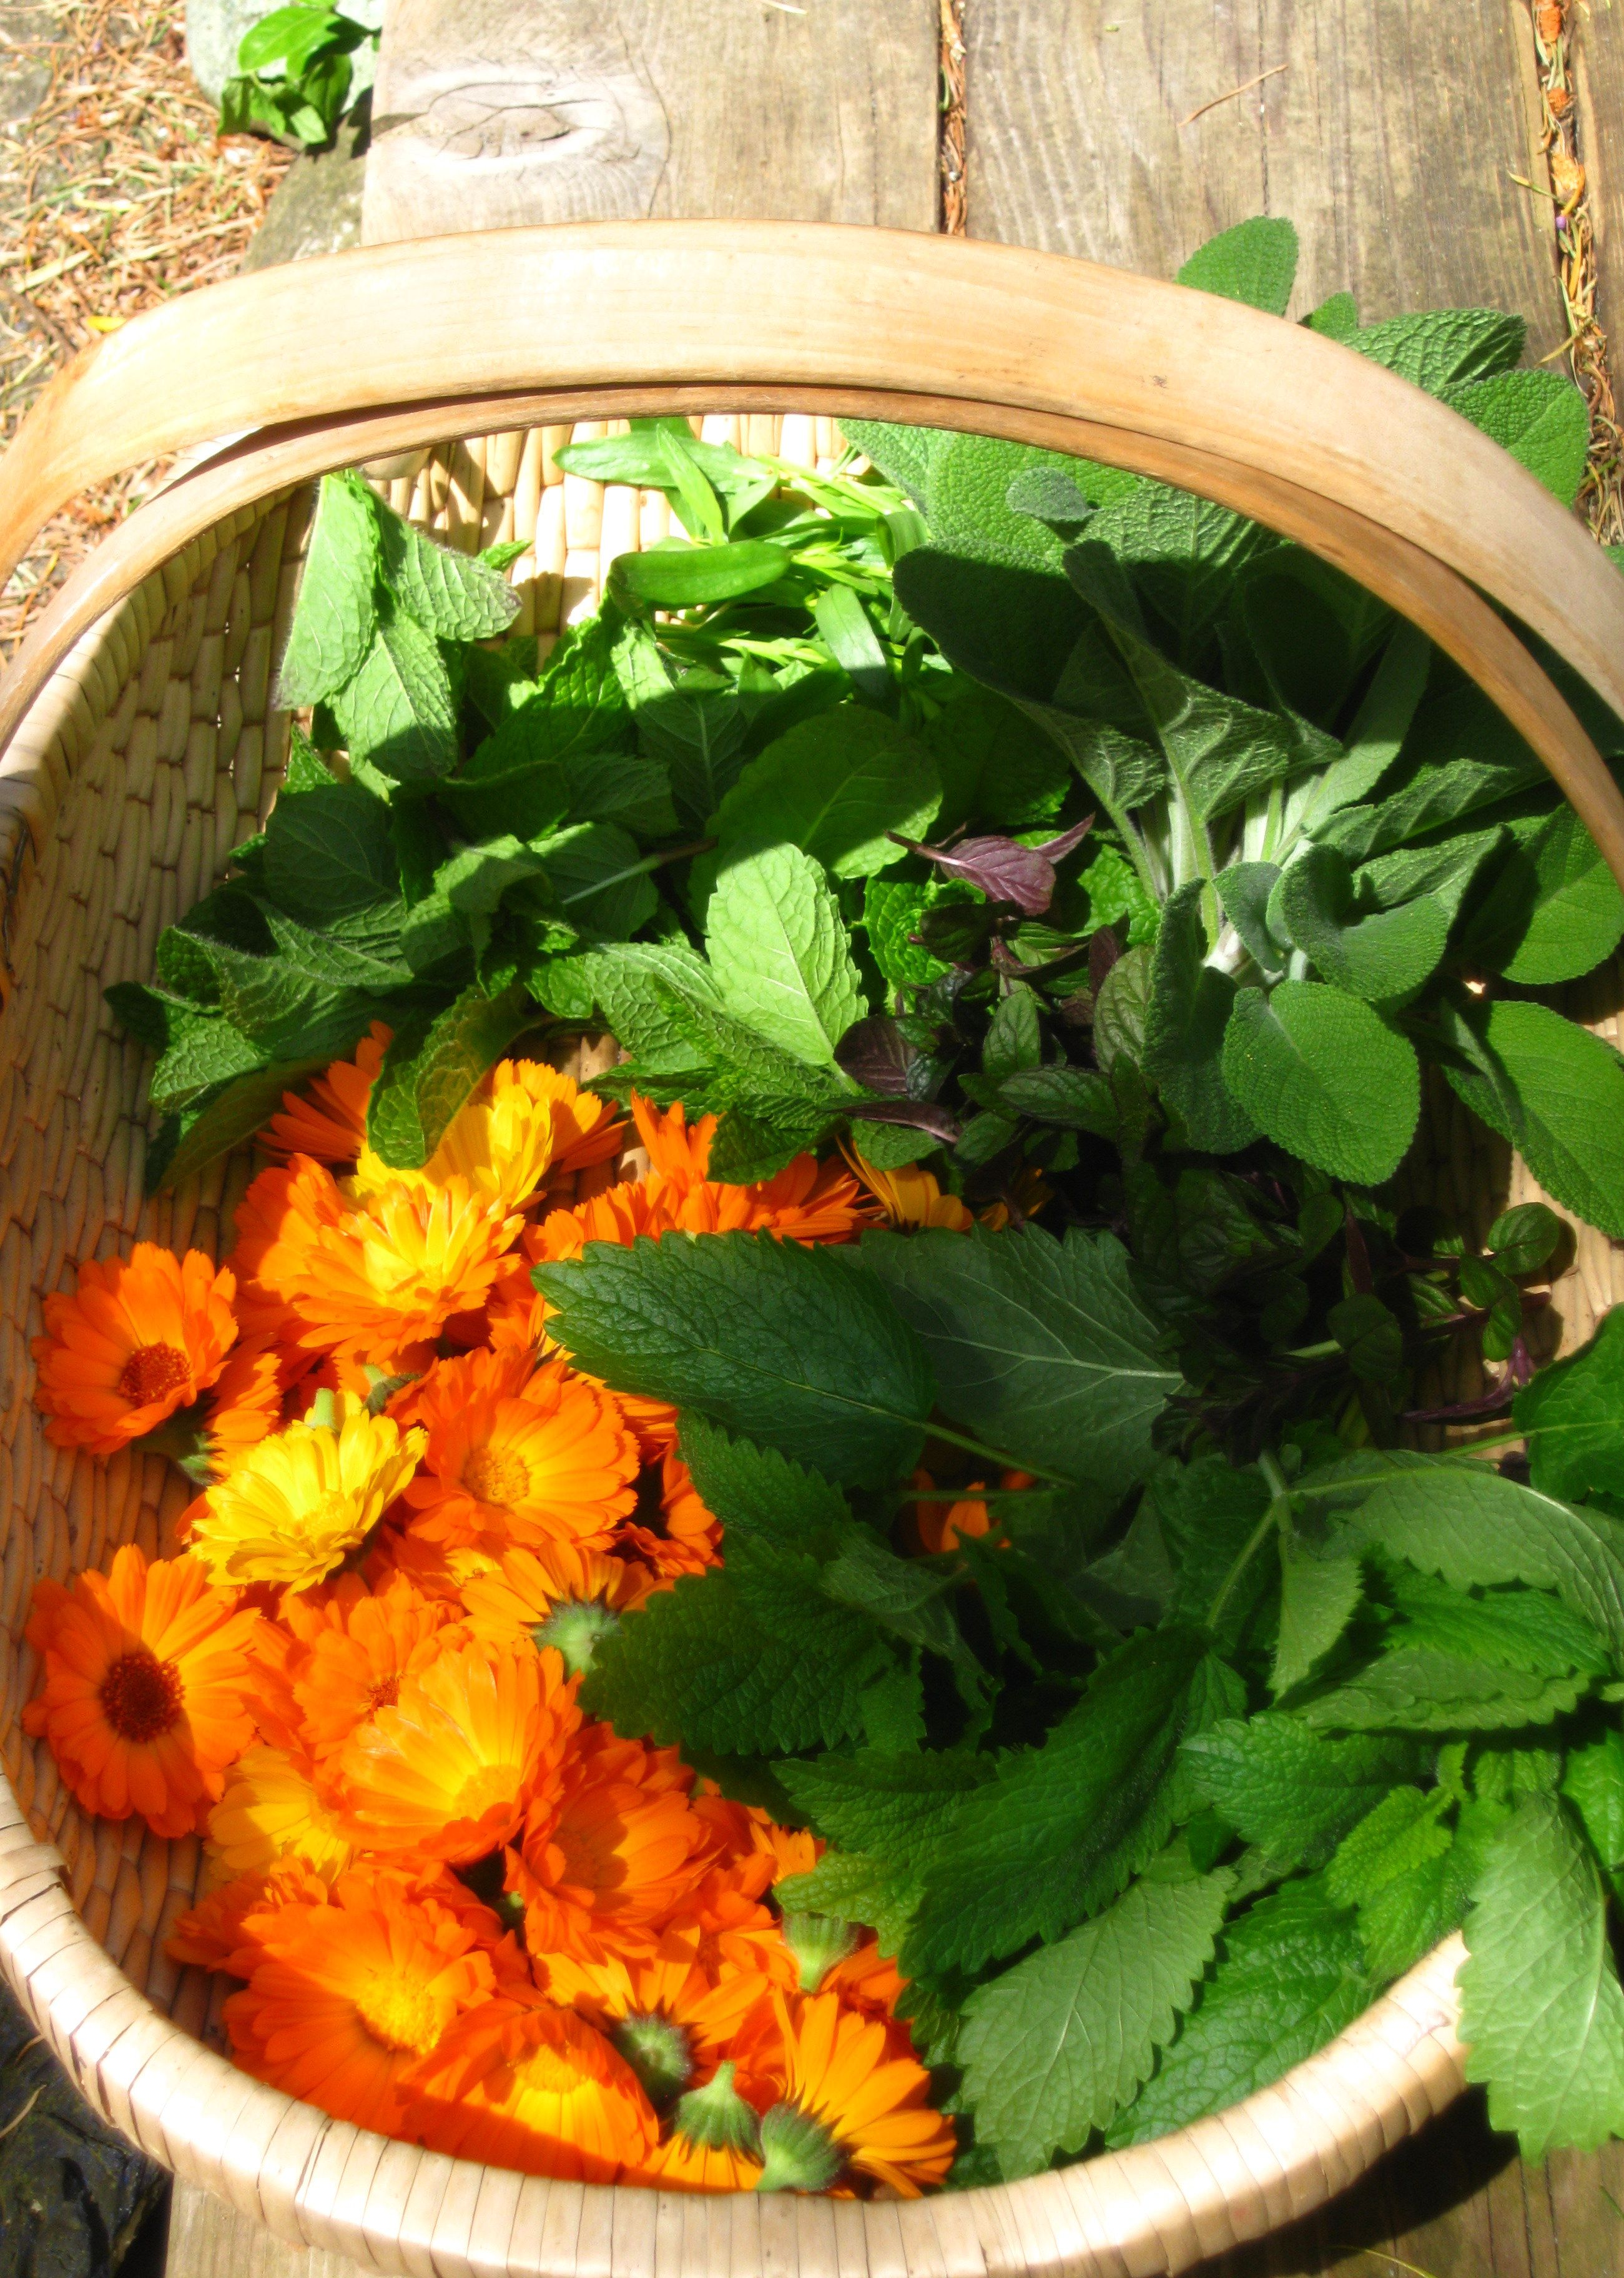 Herbs from the garden for drying.  calendula, sage, mint, and tarragon